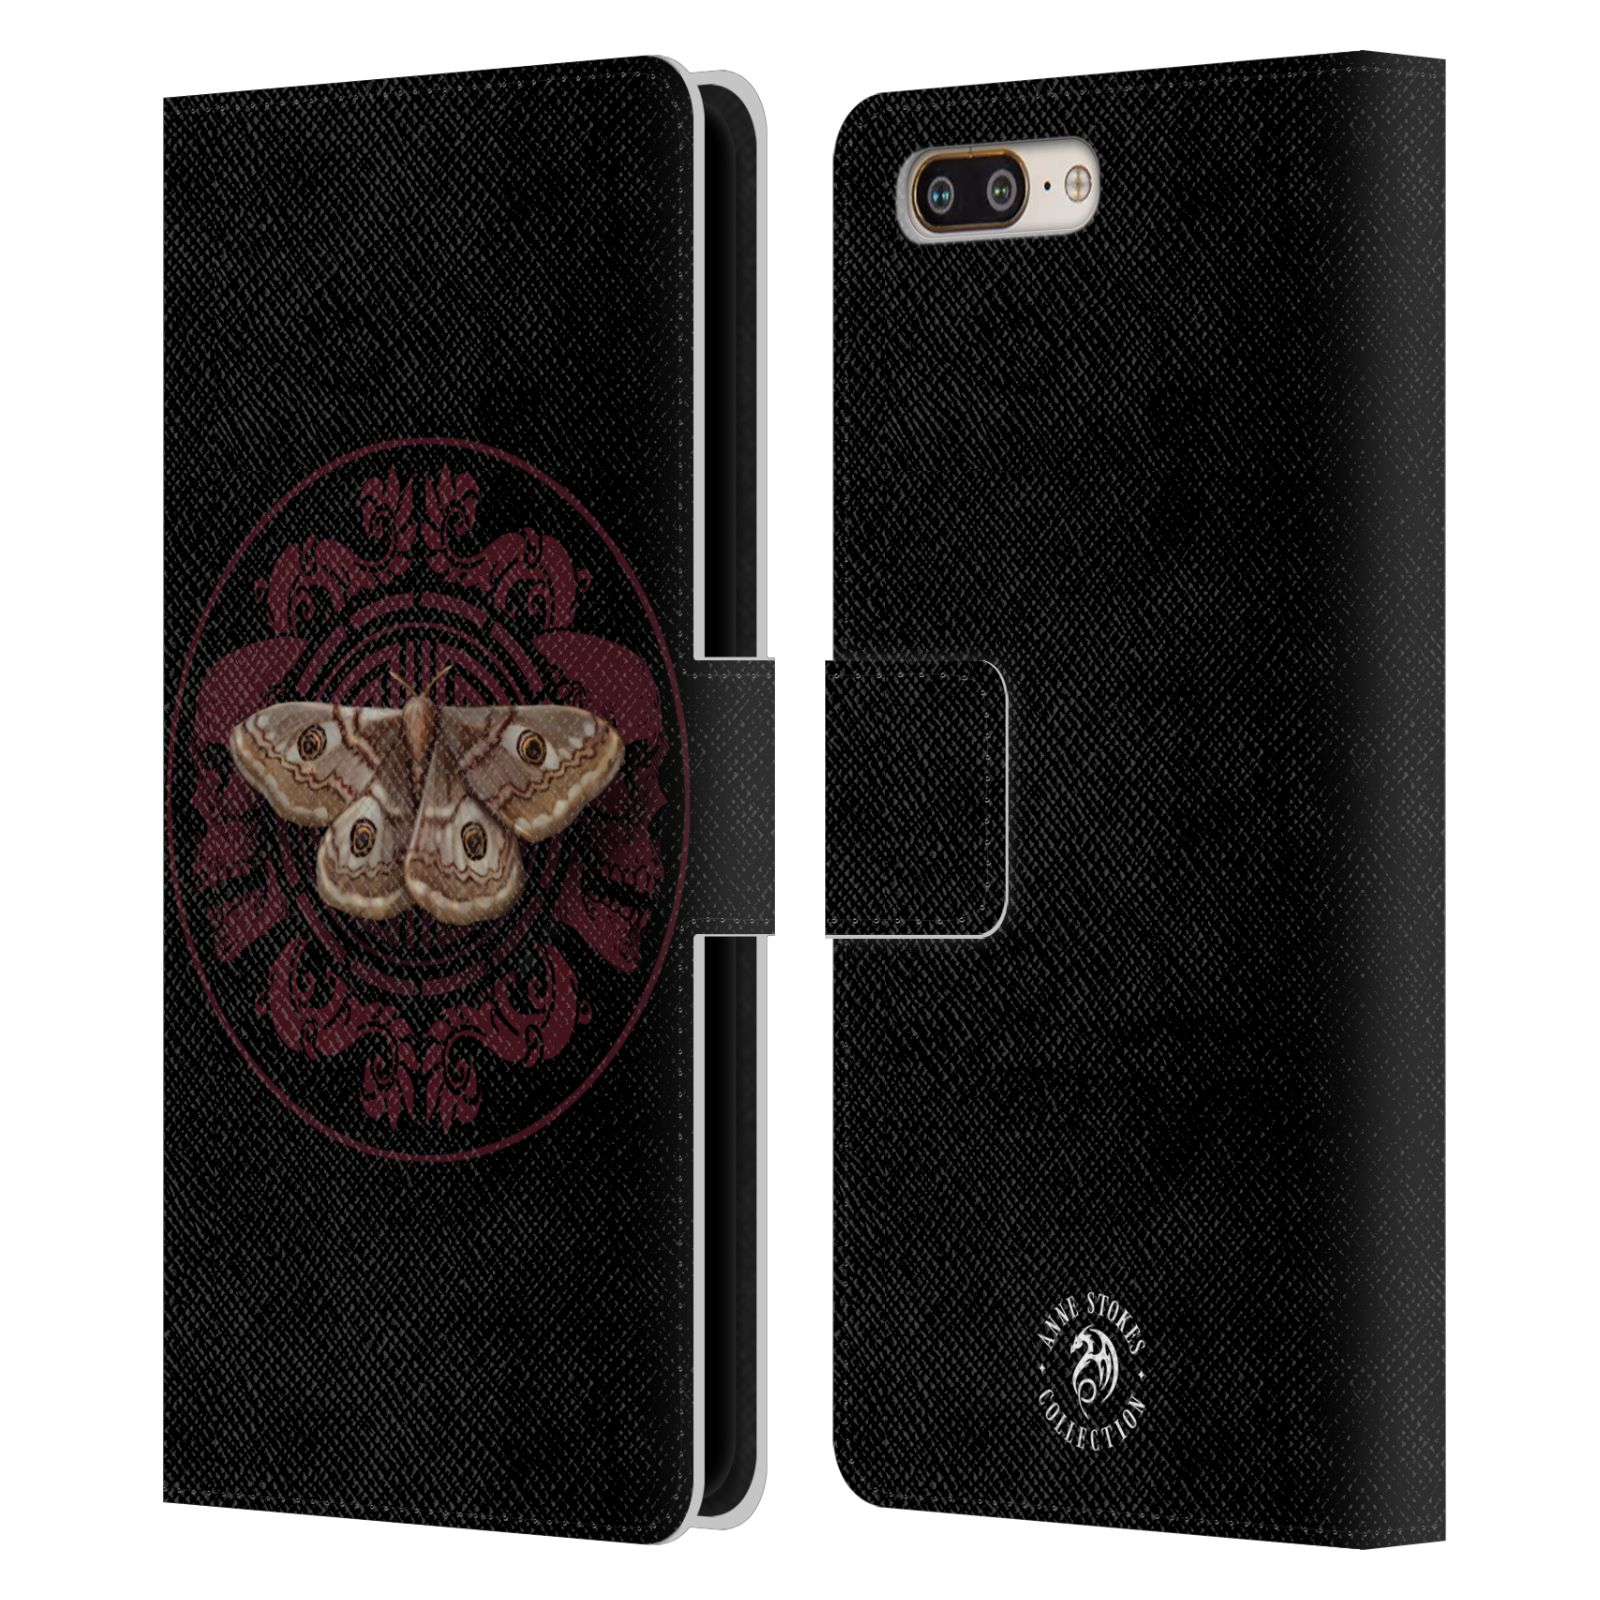 OFFICIAL-ANNE-STOKES-ORNAMENTS-LEATHER-BOOK-WALLET-CASE-FOR-BLACKBERRY-ONEPLUS